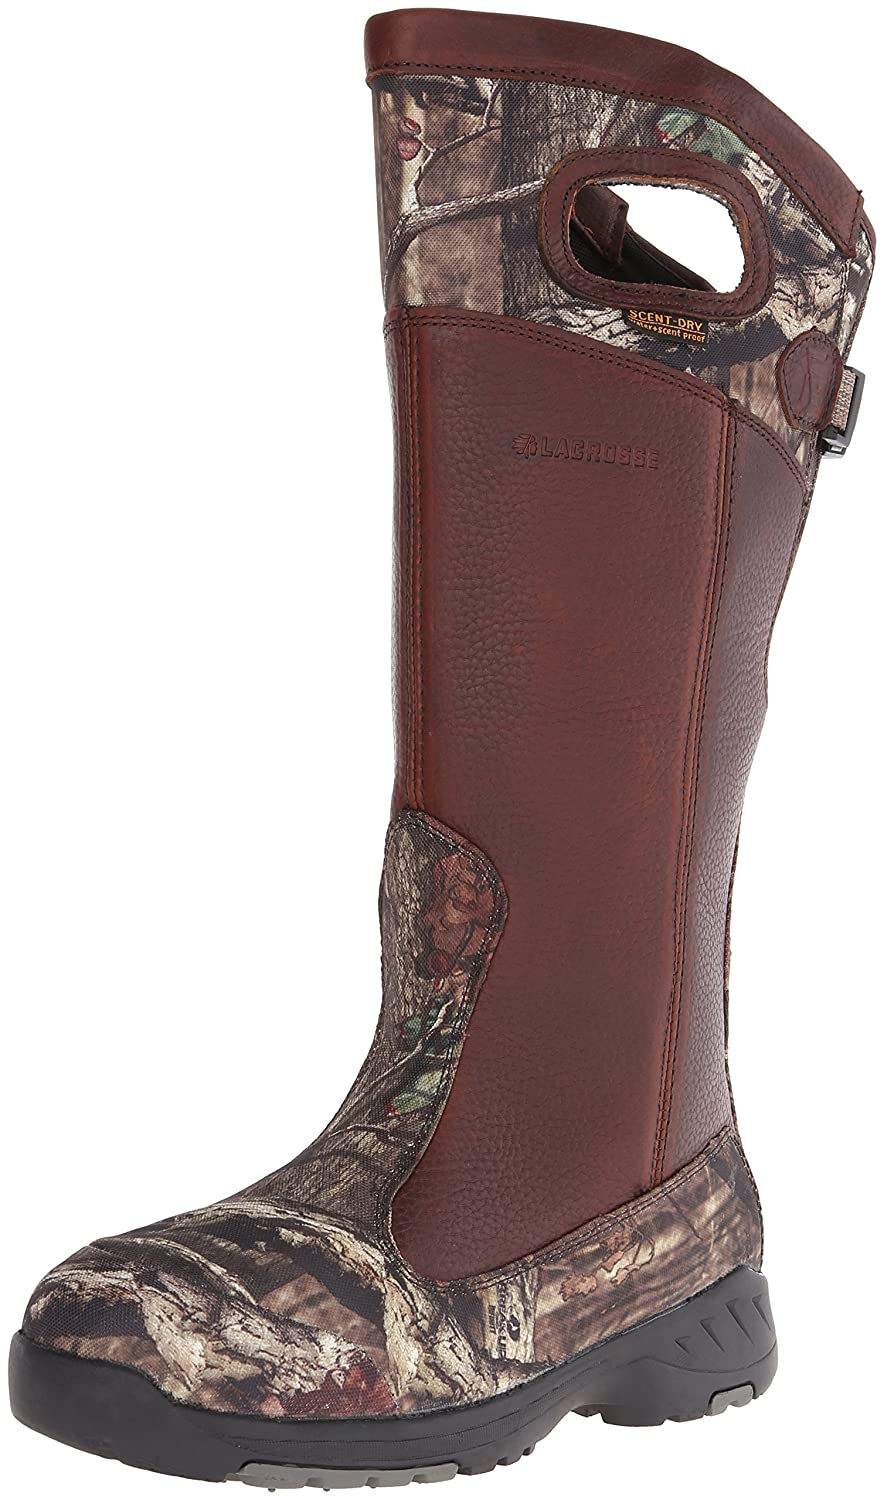 The Best Hunting Boots For Taking A Walk On The Wild Side